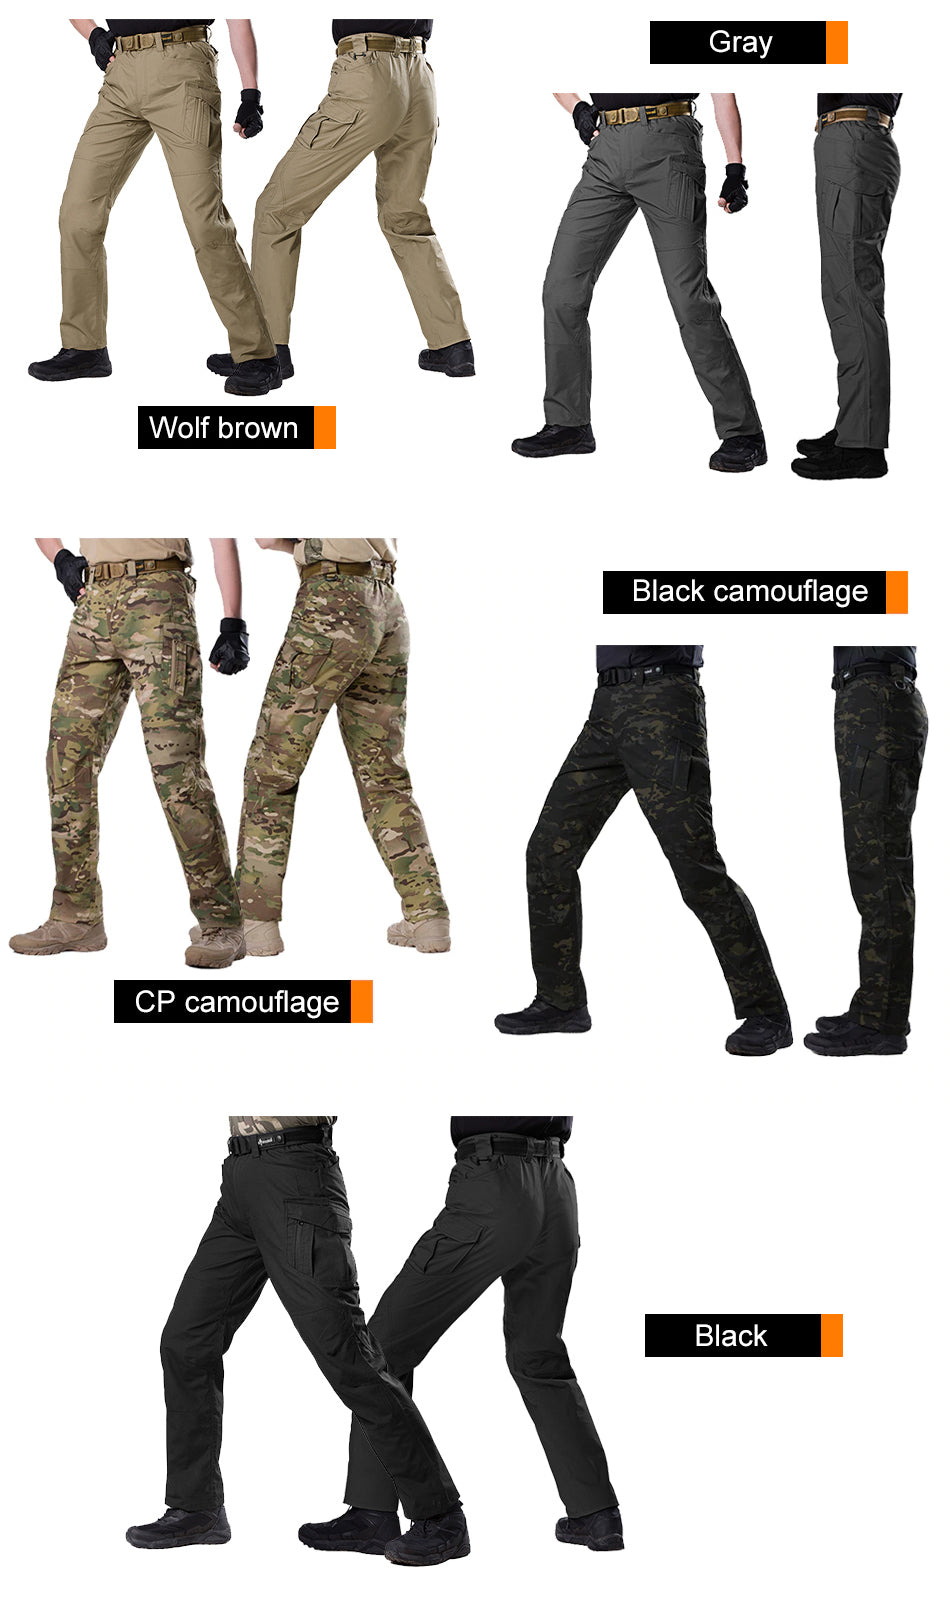 Men's Tactical Pants Military Combat Breathable Hiking Pants Multi Pocket Pant For Workwear Hiking Traveling Water Repellent - 5 Colors